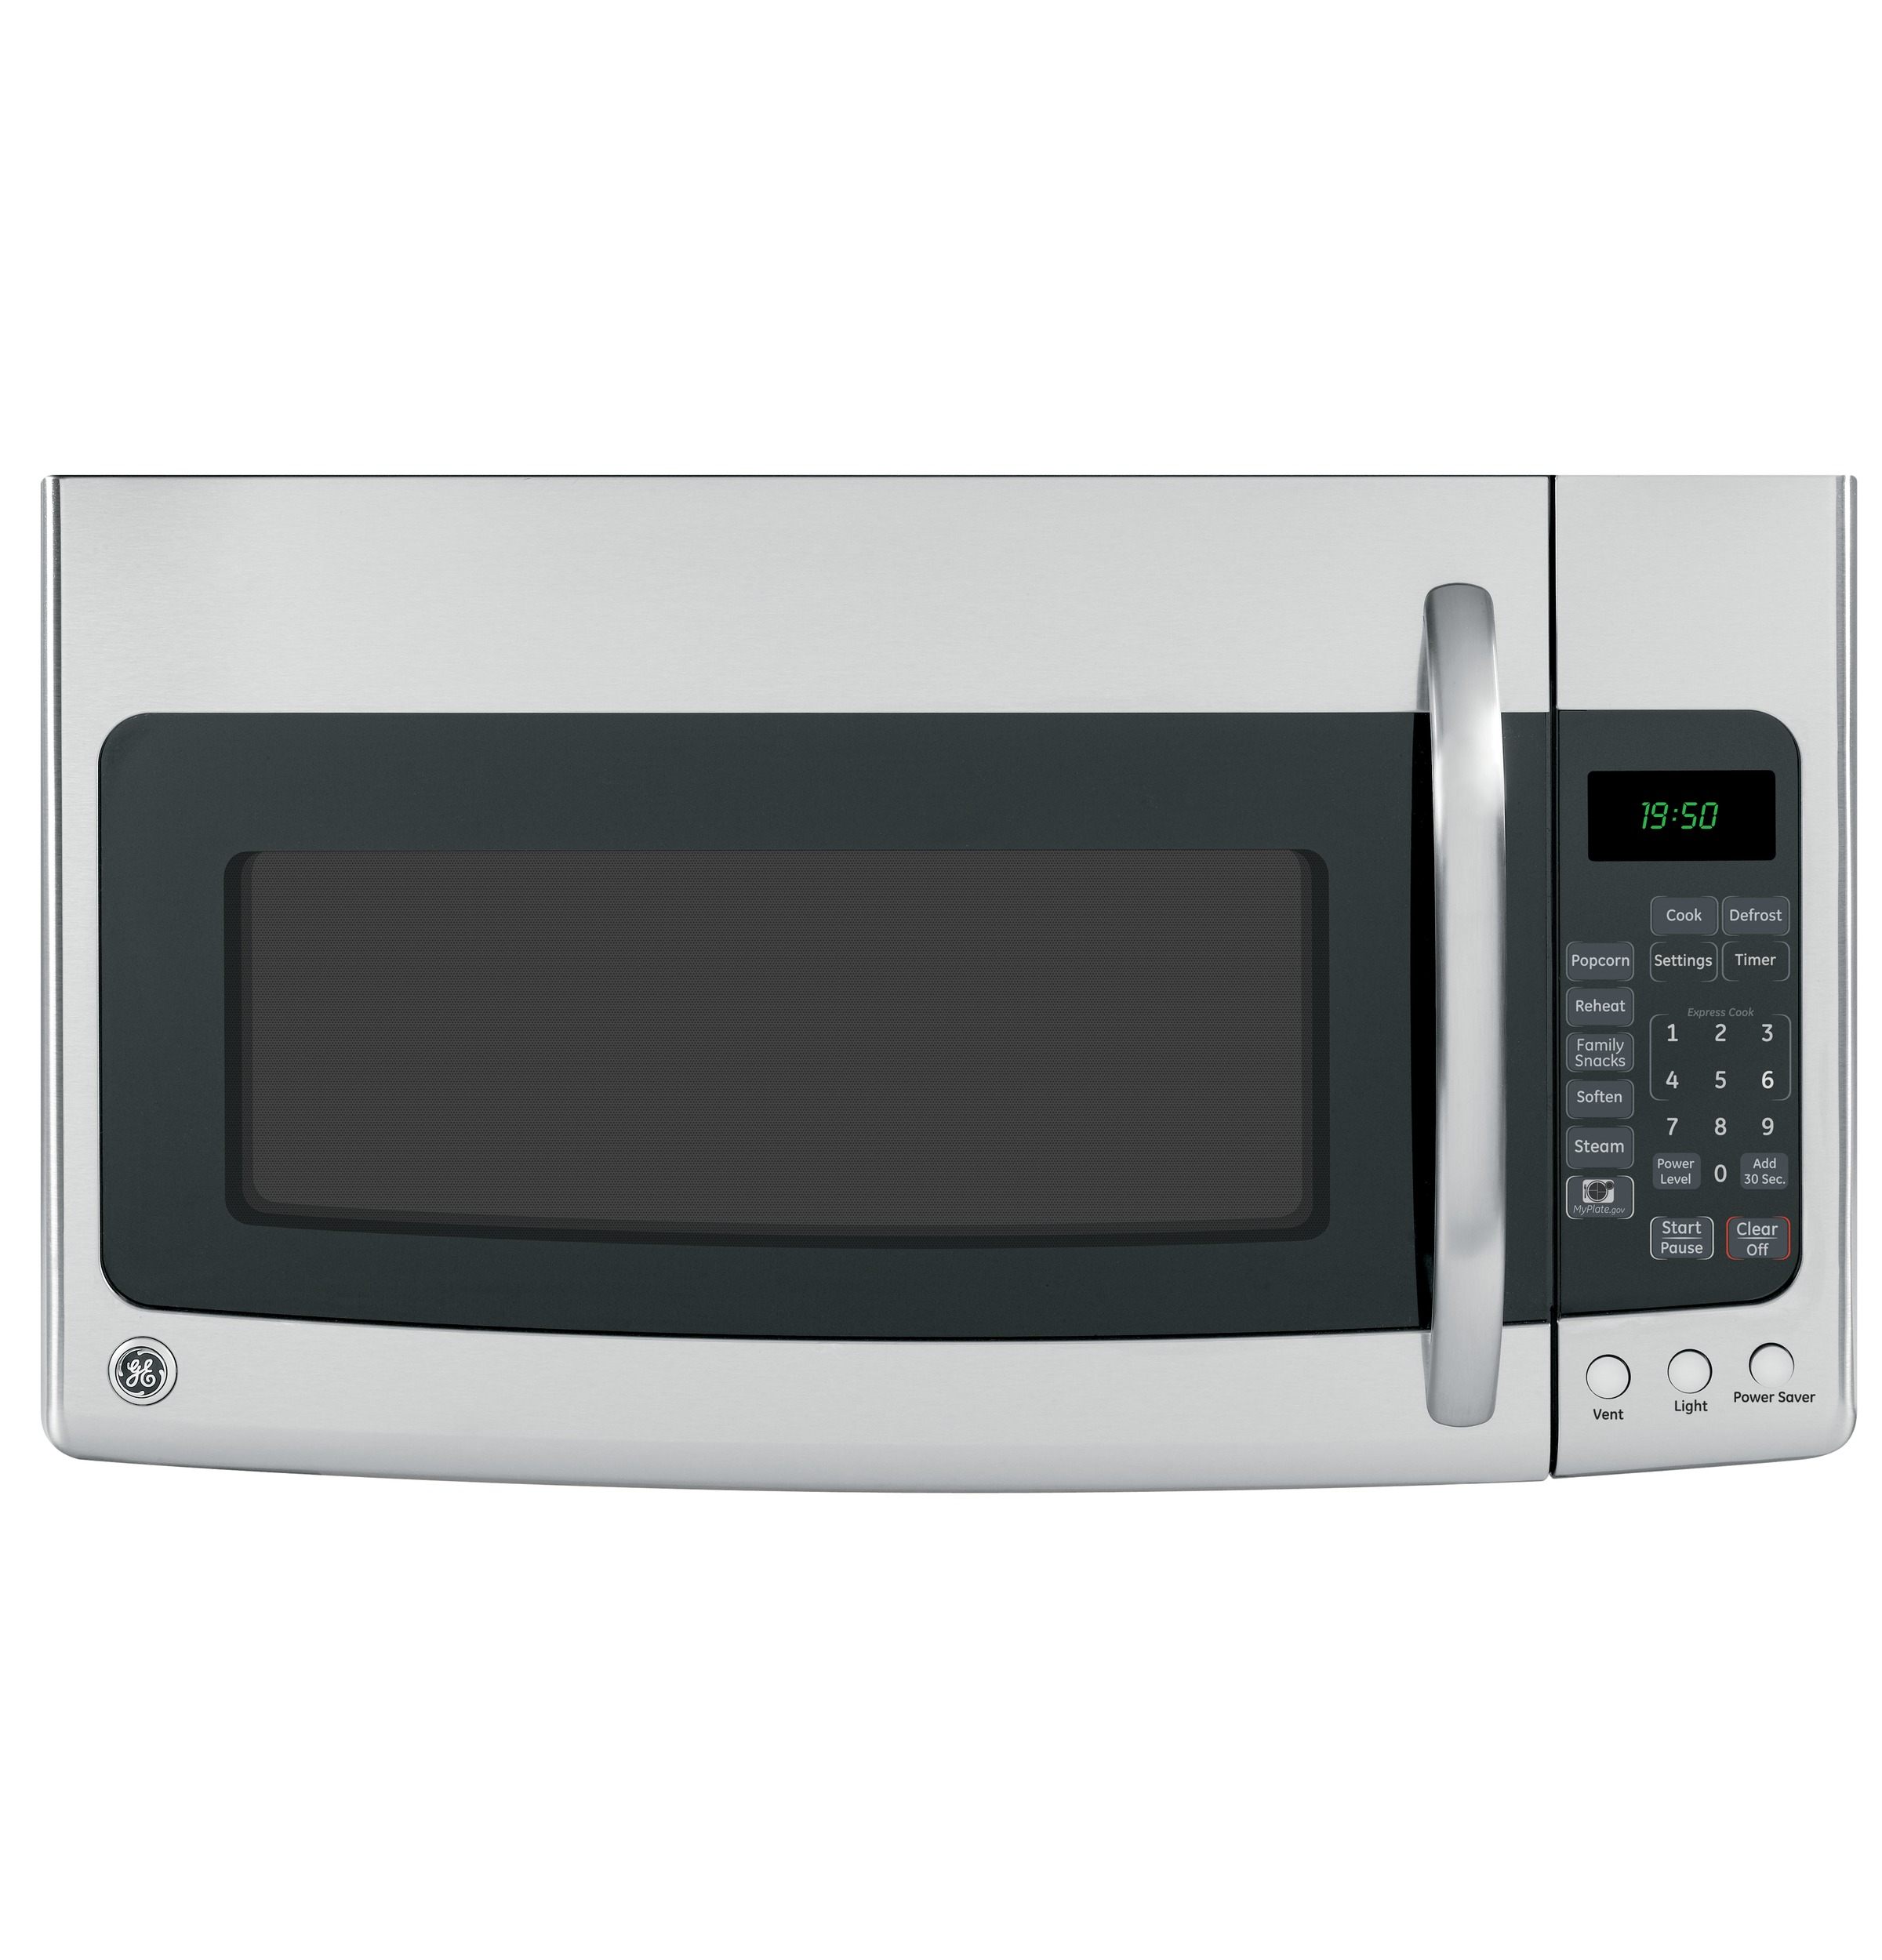 Powerful Microwave Oven: GE Spacemaker® 1.9 Over-the-Range Microwave Oven